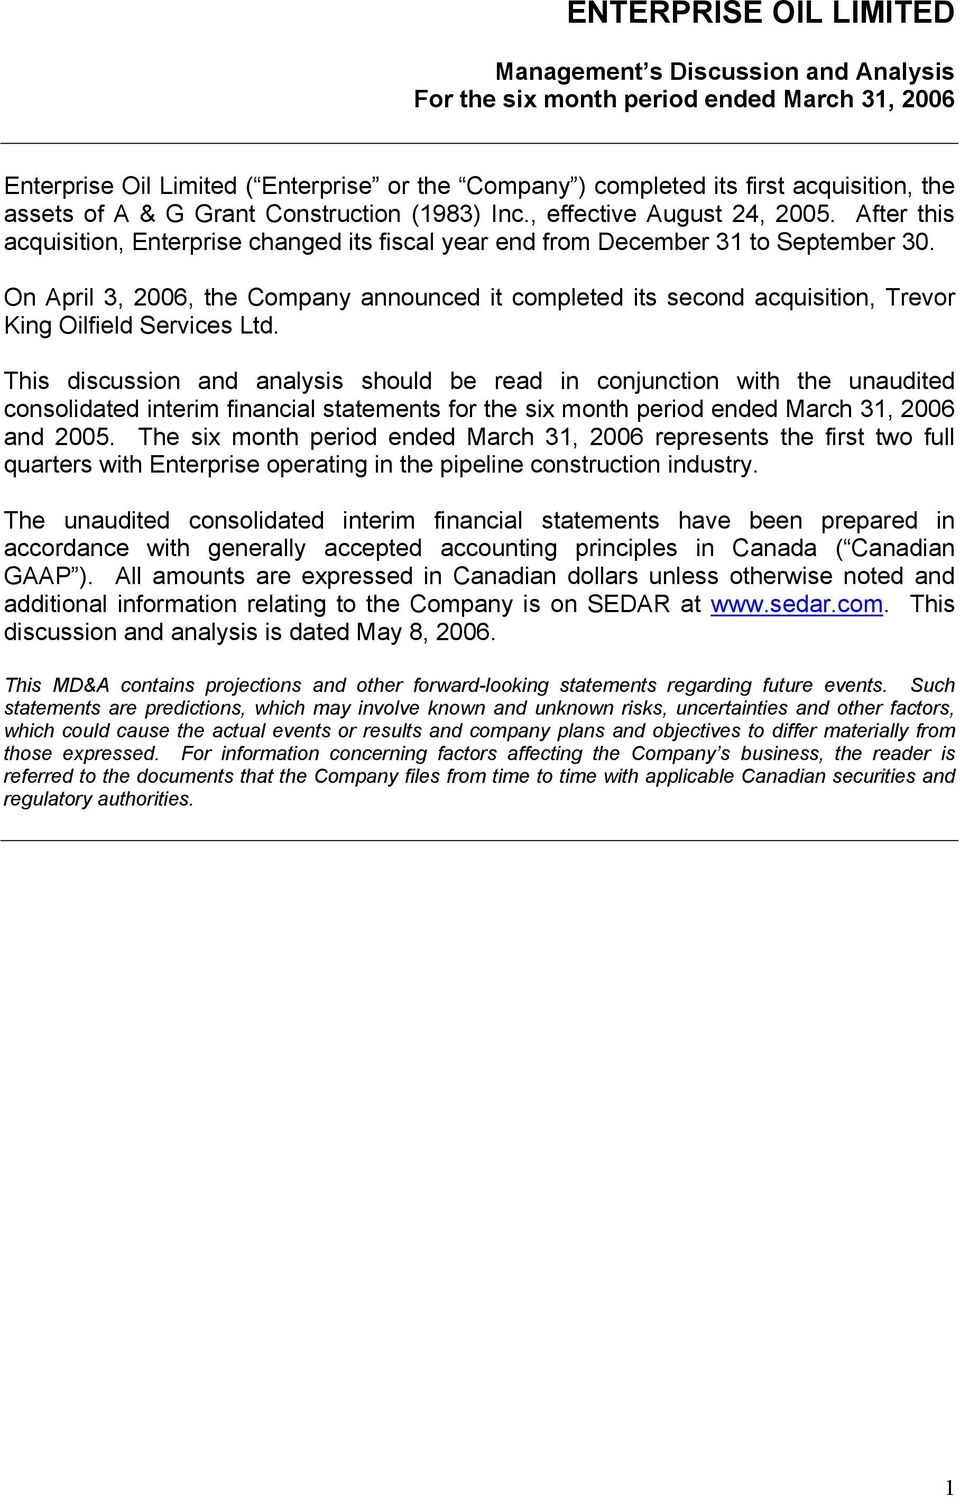 On April 3, 2006, the Company announced it completed its second acquisition, Trevor King Oilfield Services Ltd.